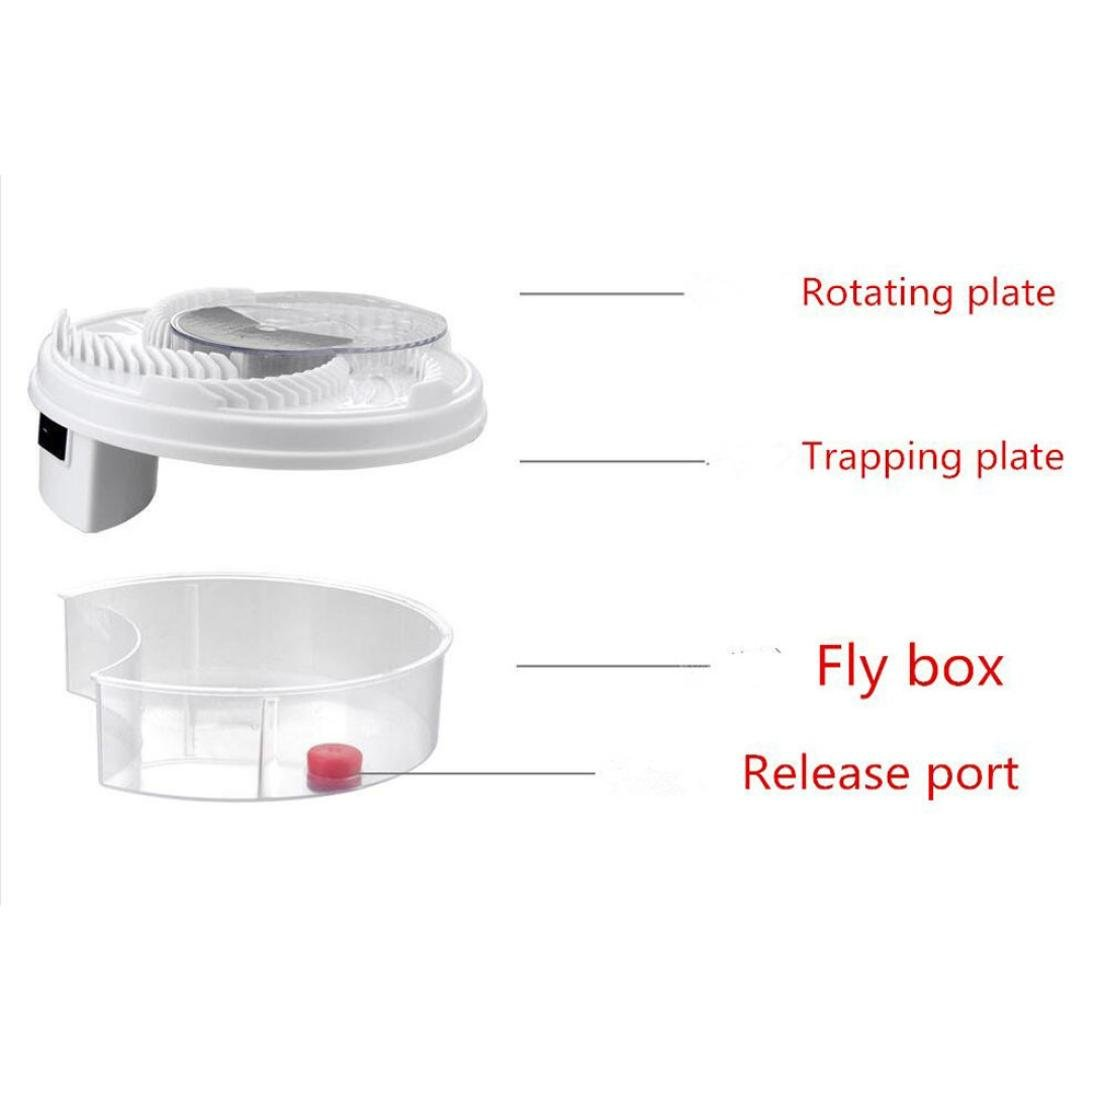 Hechun Electric Fly Trap Device with Trapping Food Mosquito Killer Pest Control Pest Catcher (White) by Hechun (Image #4)